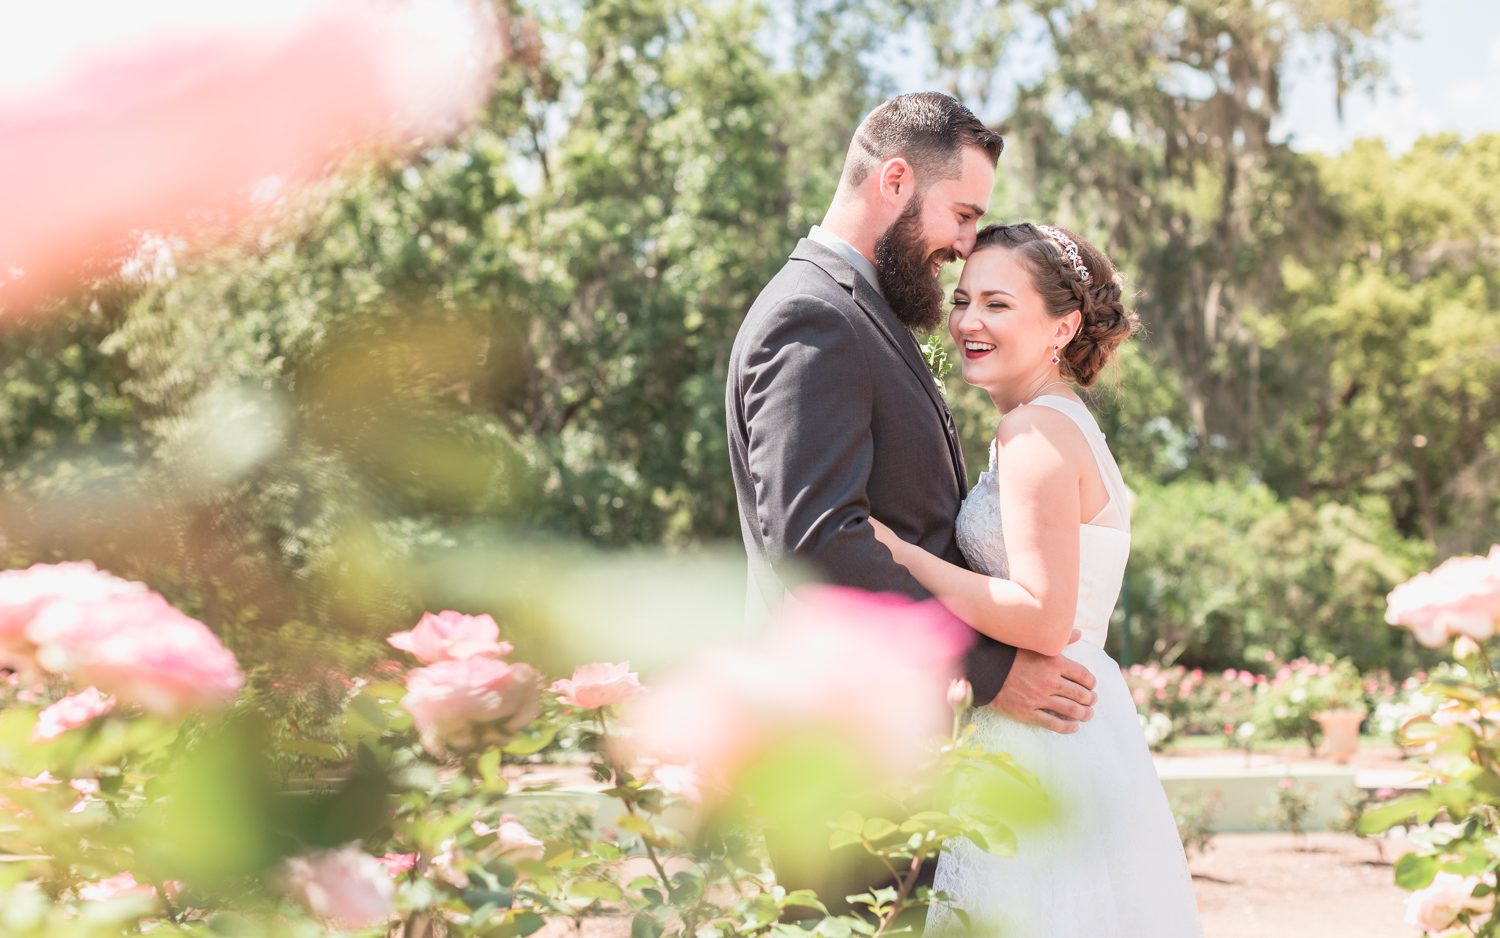 Romantic intimate wedding photo at Leu Gardens captured by top Orlando elopement and wedding photographer and videographer